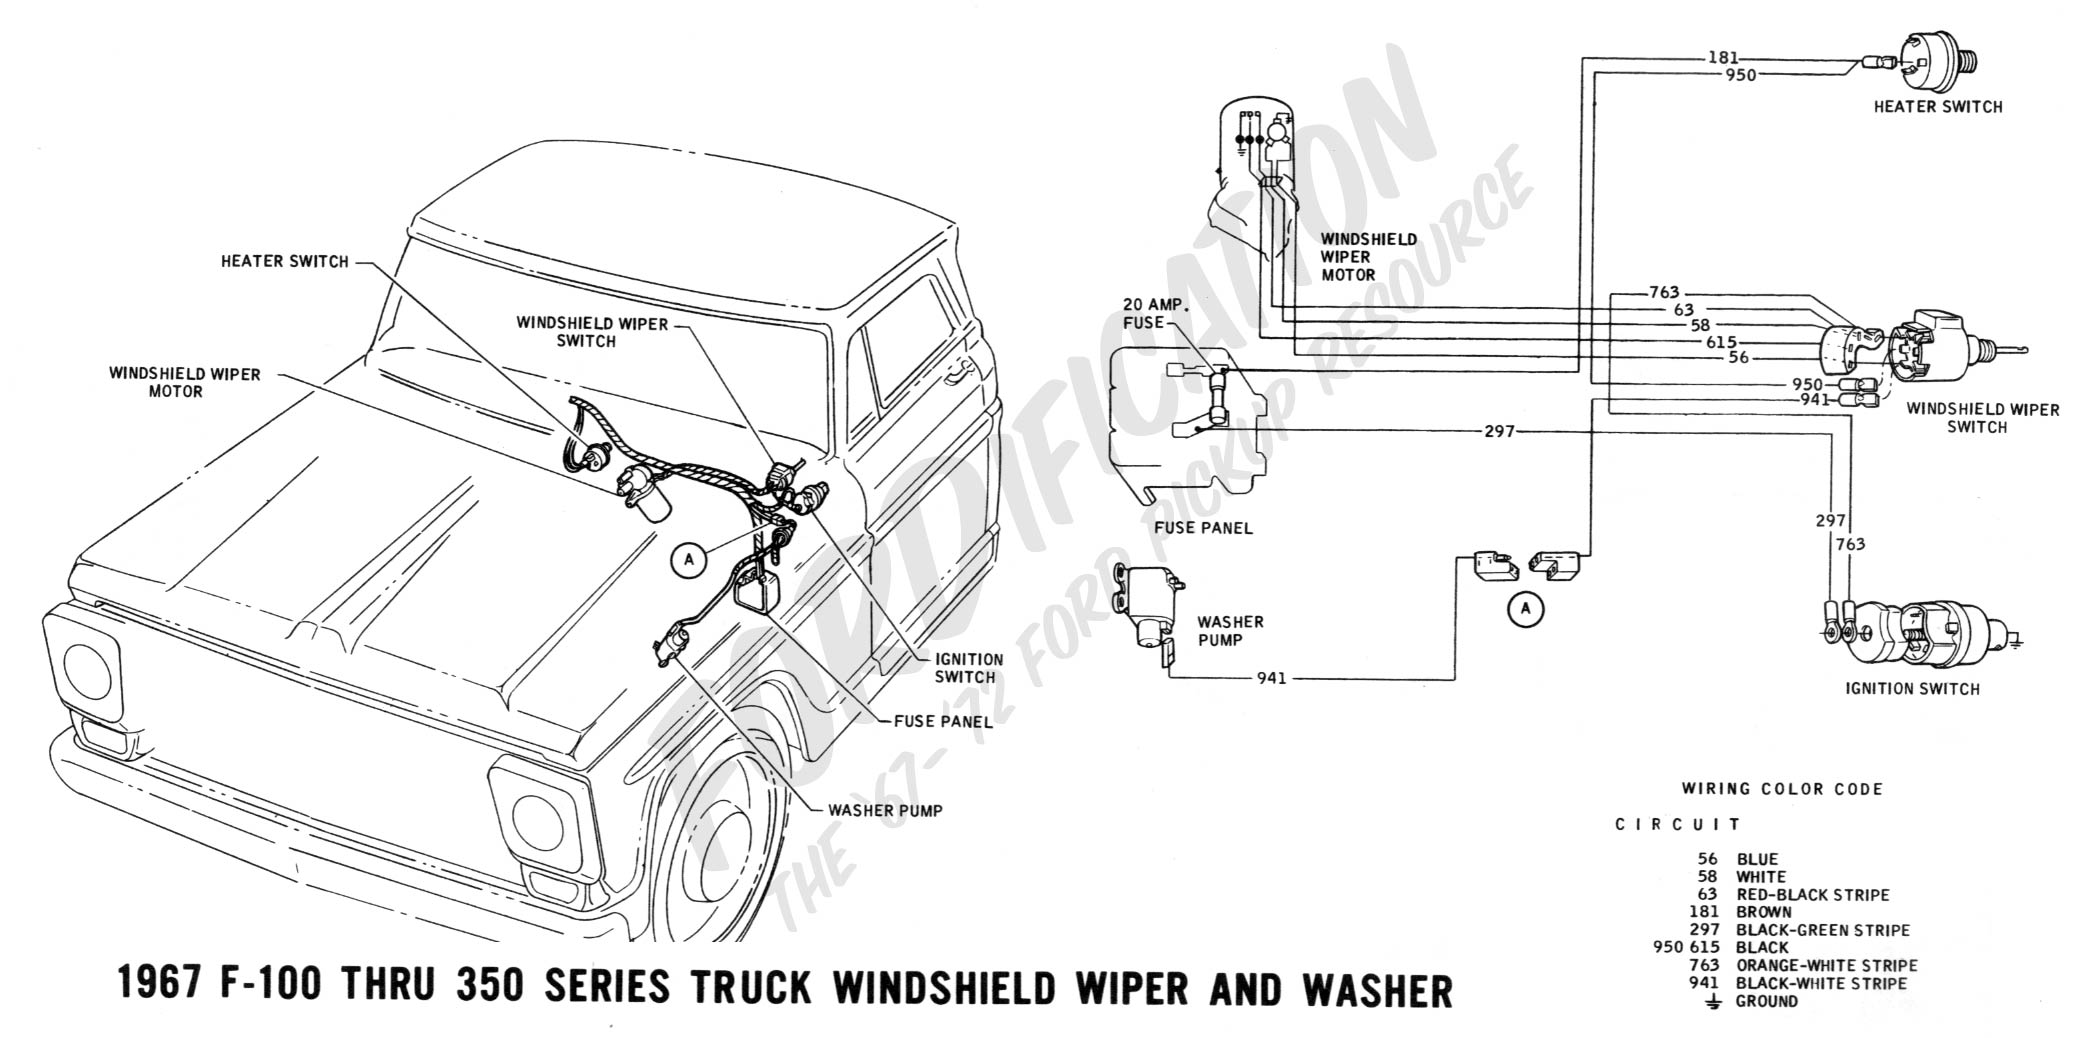 ford truck technical drawings and schematics section h wiring rh fordification com 1967 Ford Wiring Diagram 1967 Ford Mustang Wiring Diagram